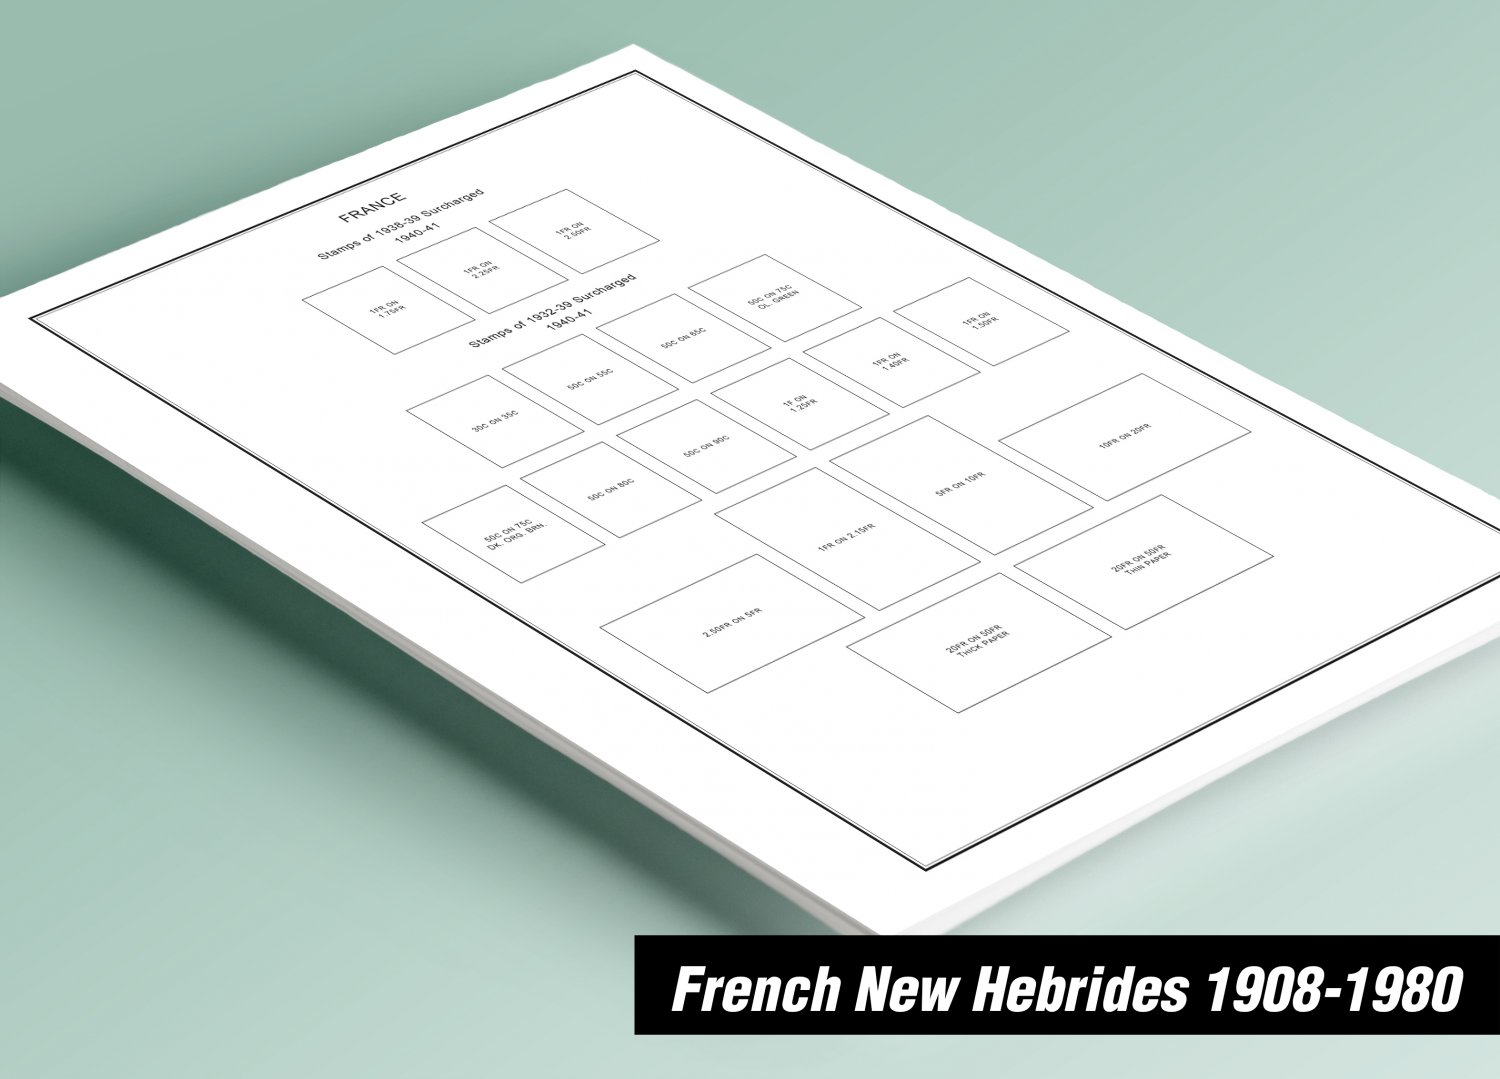 PRINTED FRENCH NEW HEBRIDES 1908-1980 STAMP ALBUM PAGES (34 pages)